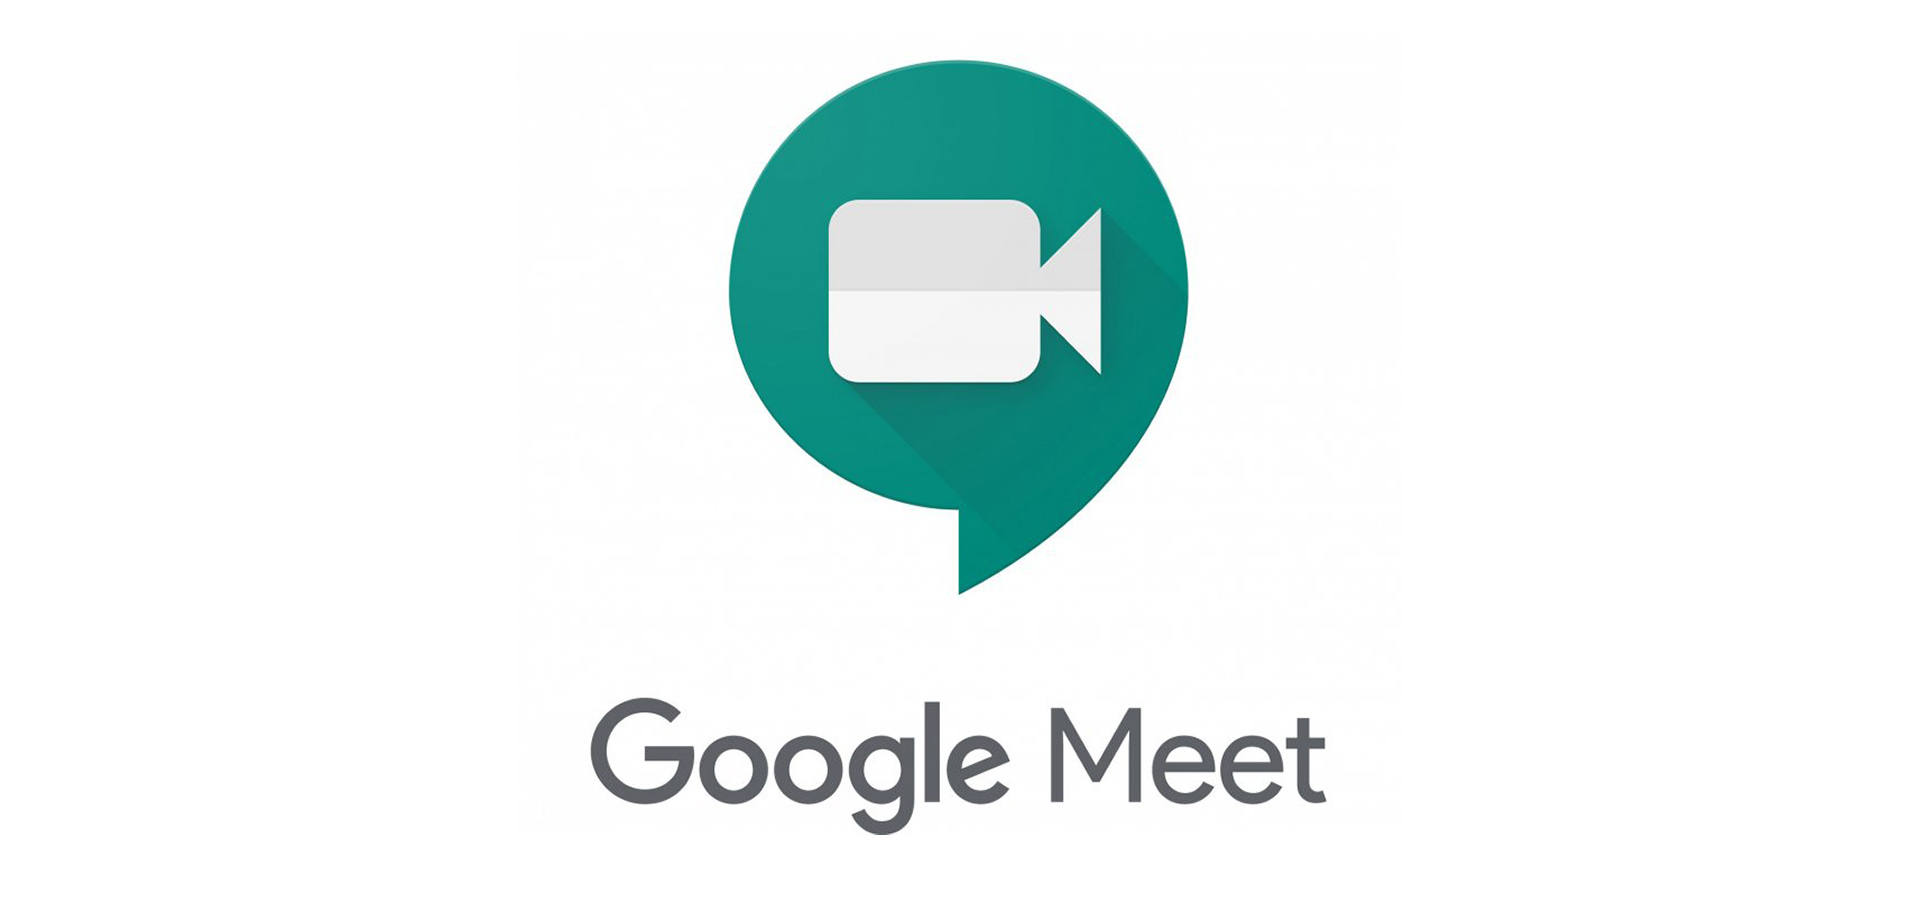 Google Meet Free Extension To End On September 30